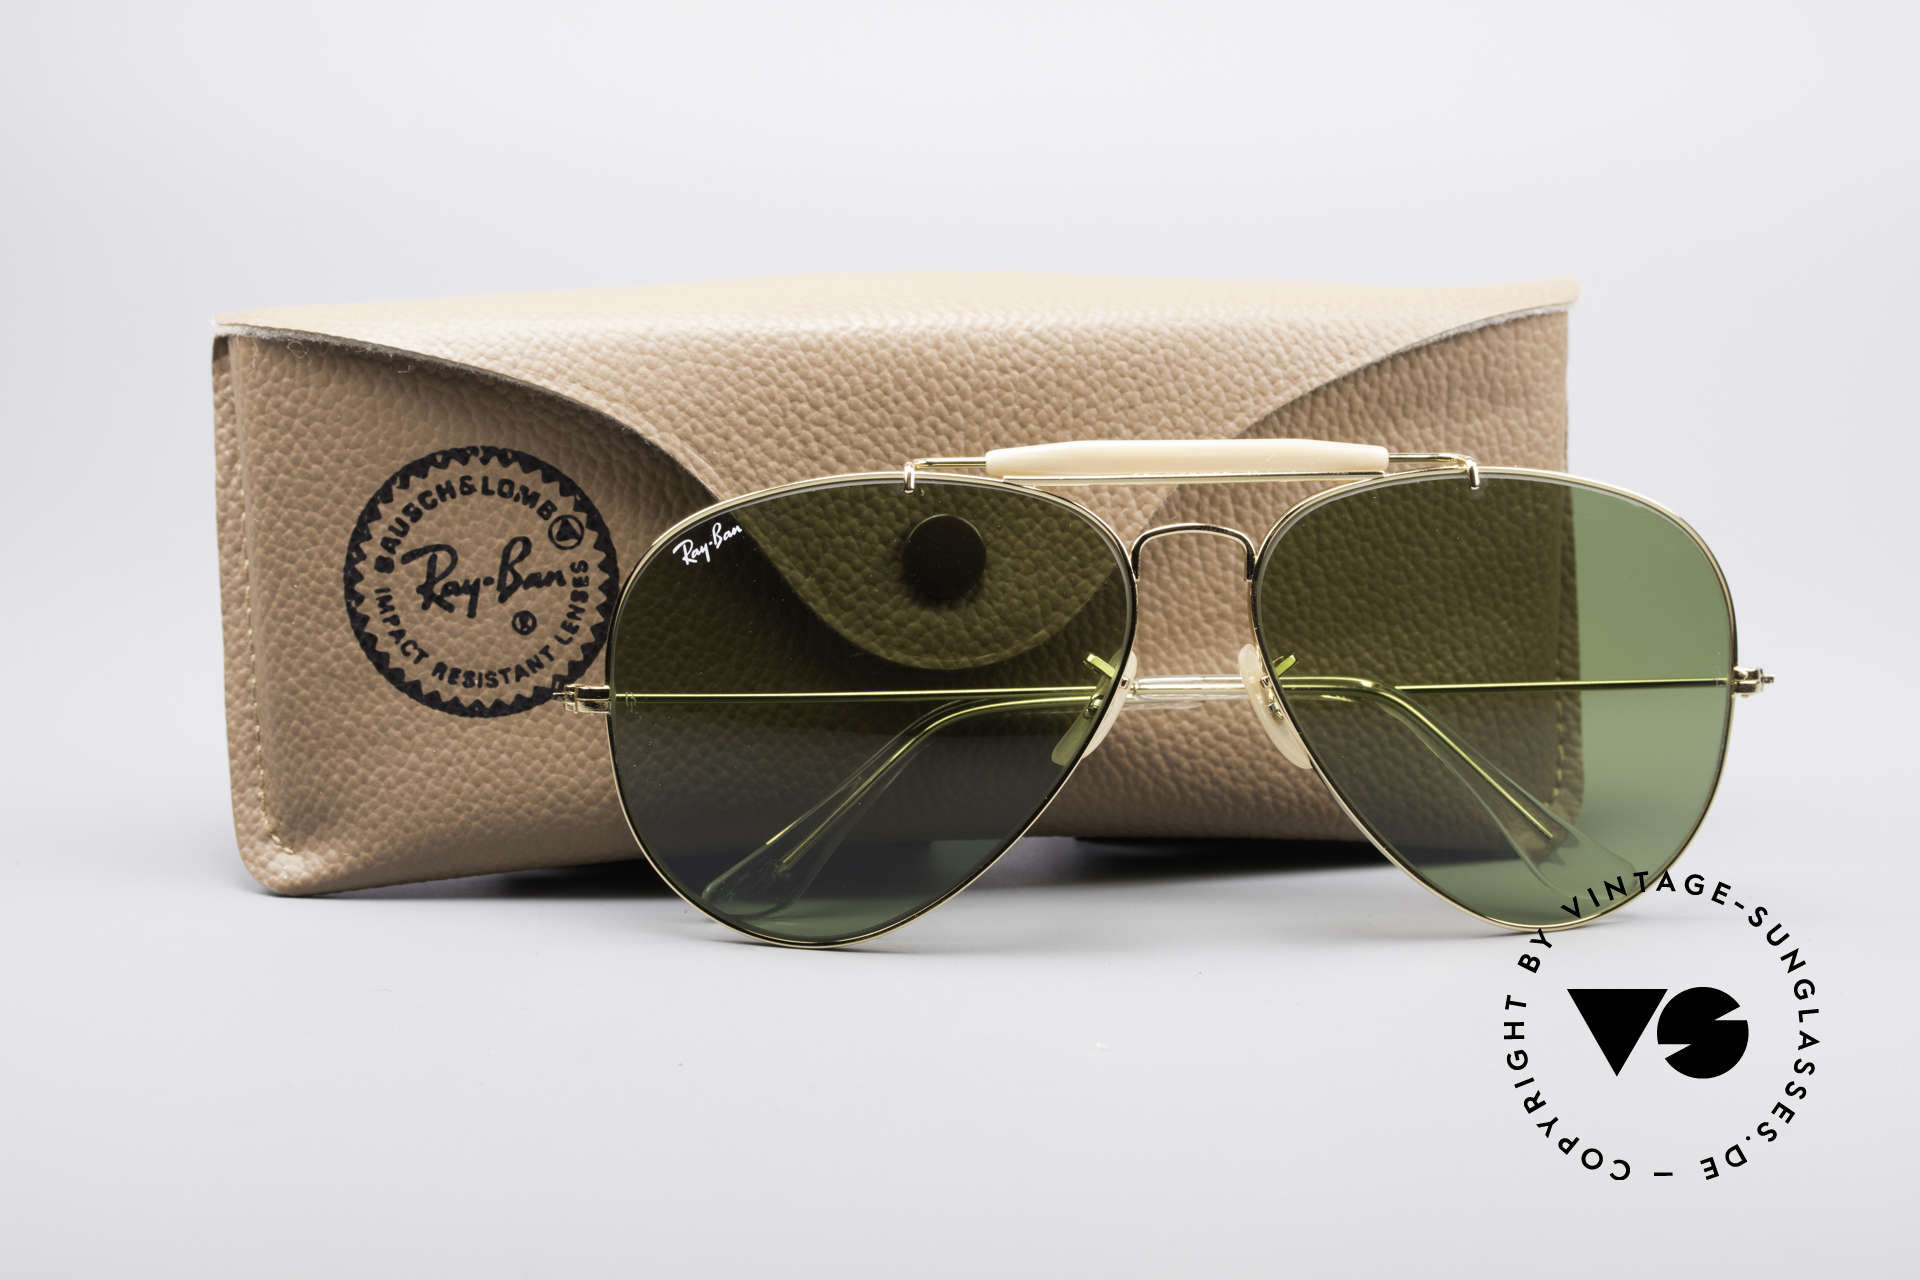 Ray Ban Outdoorsman II B&L USA Shades 80's Vintage, never worn (like all our vintage Ray Ban eyewear), Made for Men